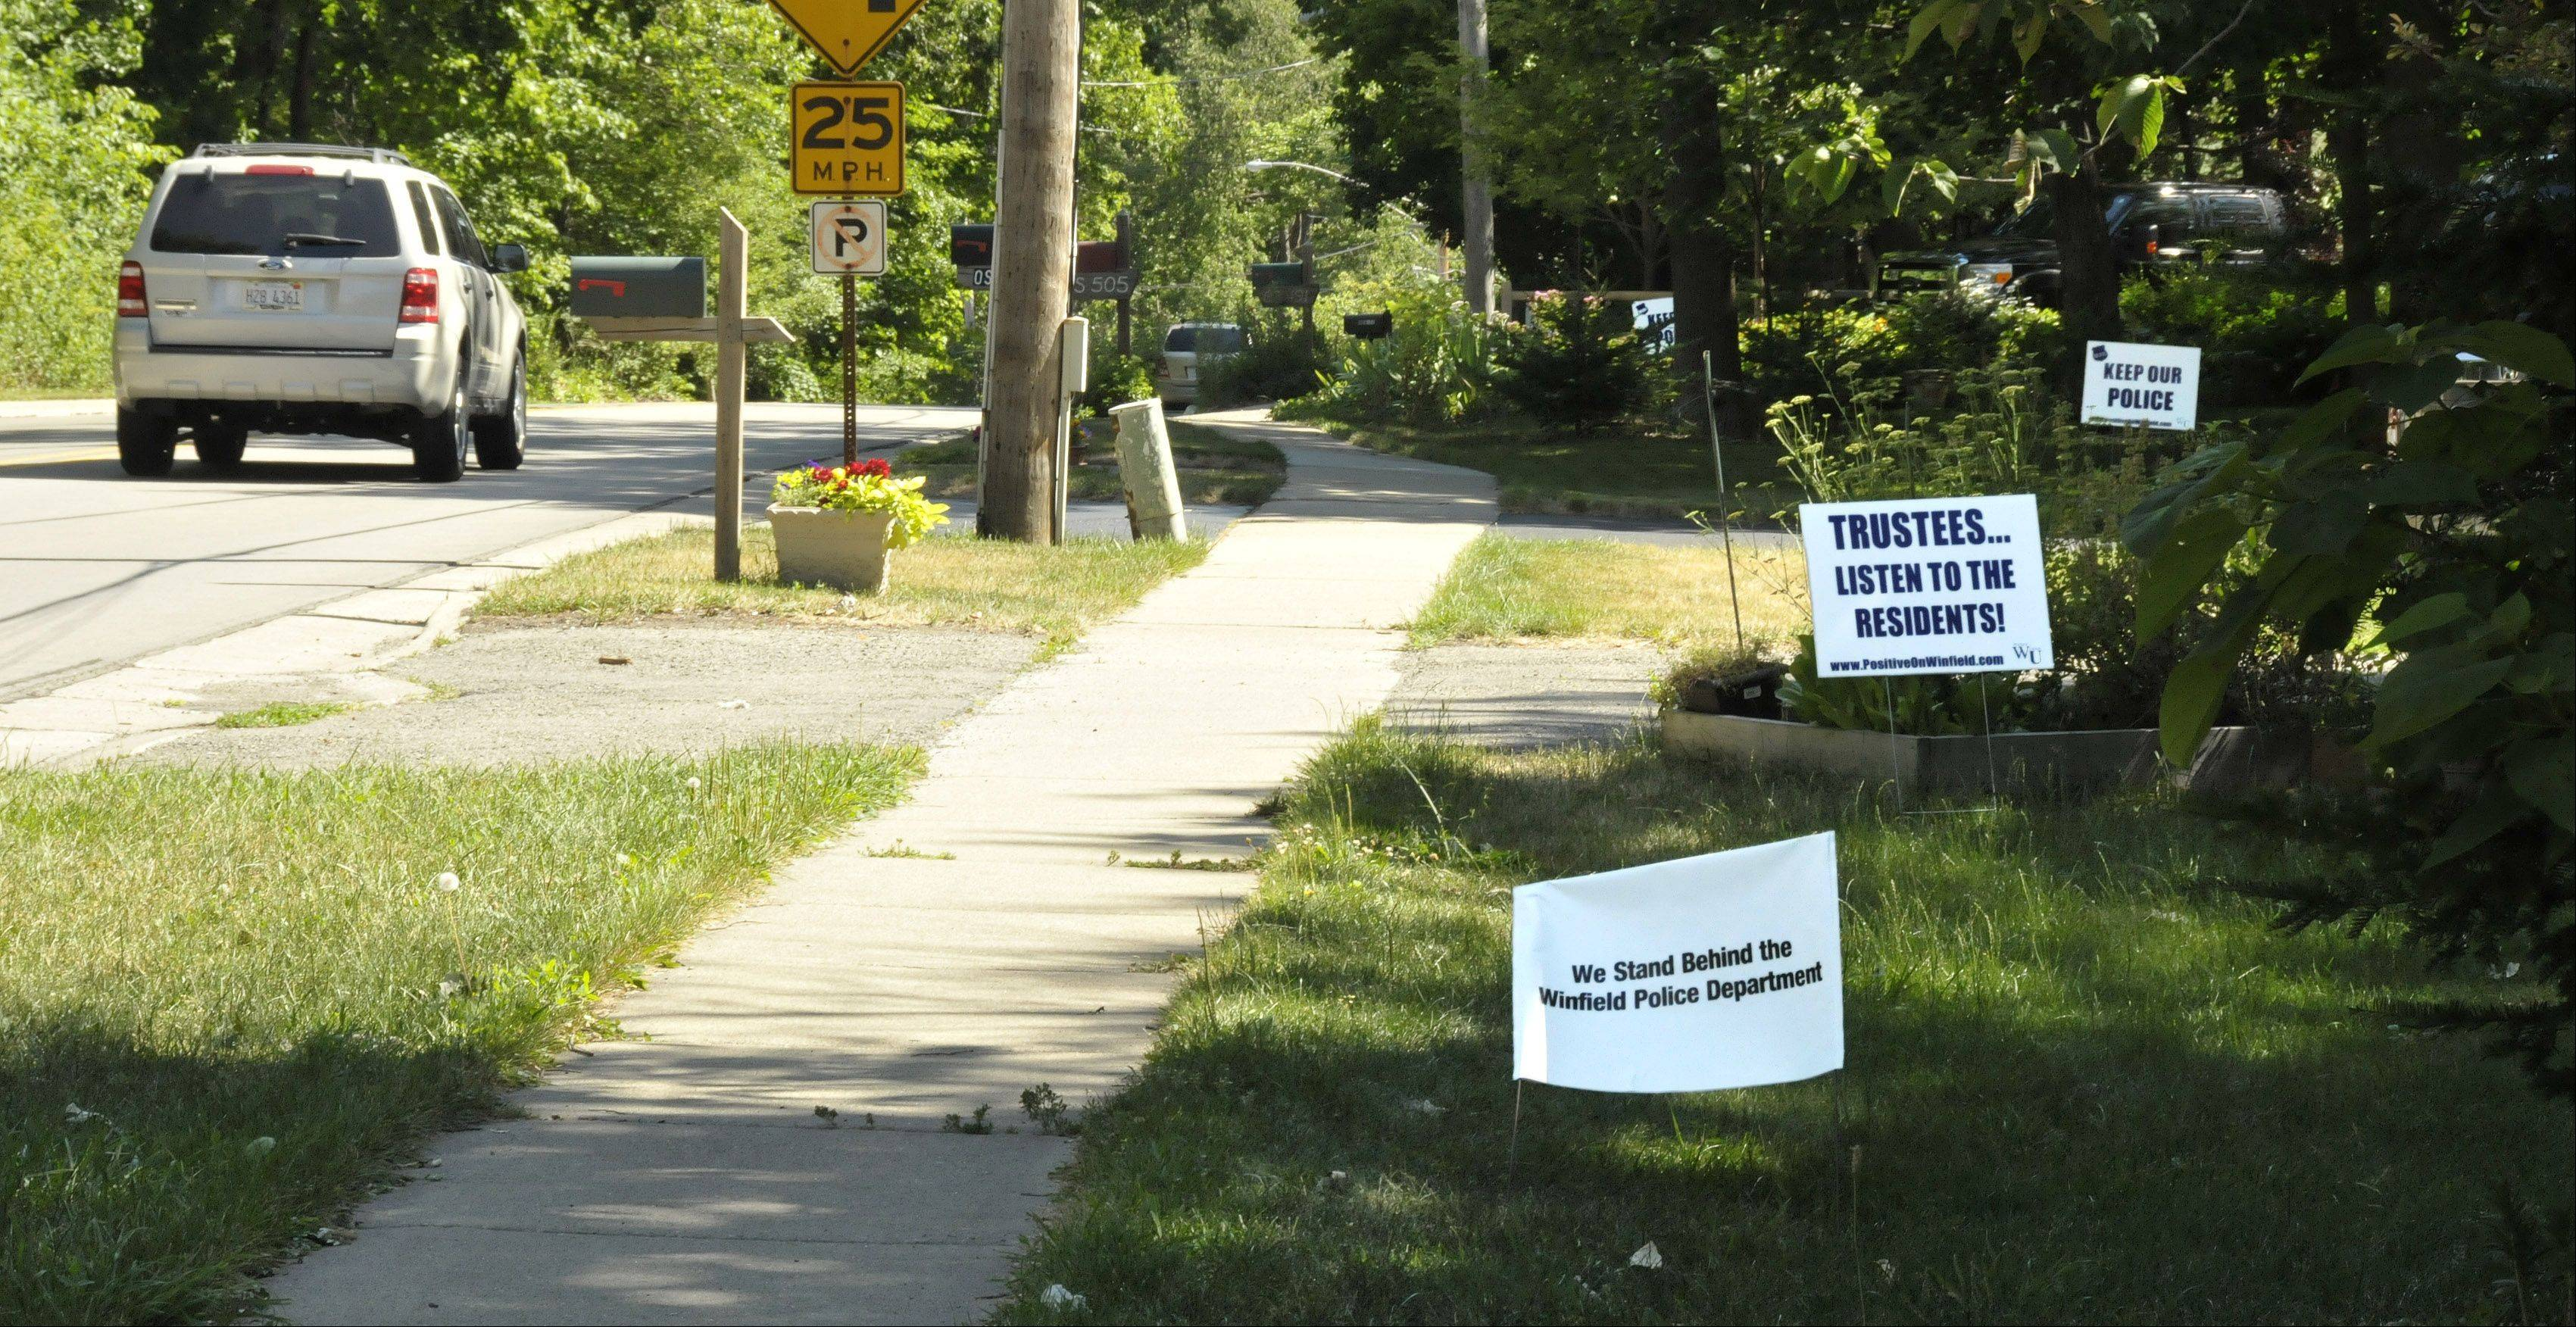 Hundreds of signs expressing support for the Winfield Police Department started appearing throughout the town after it was revealed that the village board is considering the possibility of contracting the county sheriff's office to provide police protection.